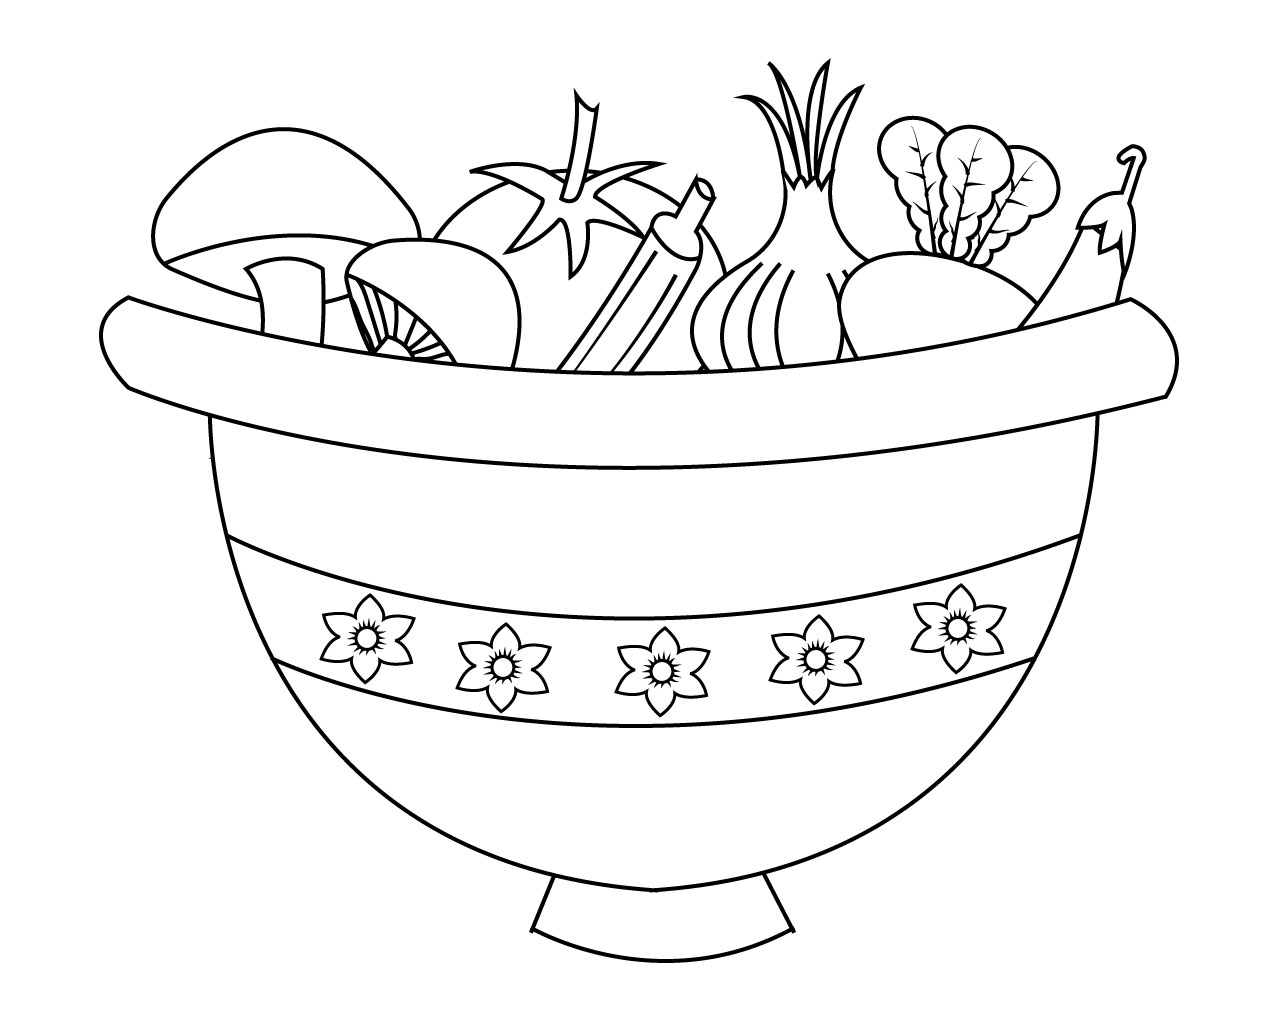 preschool vegetable coloring pages preschool coloring pages at getdrawings free download pages coloring preschool vegetable